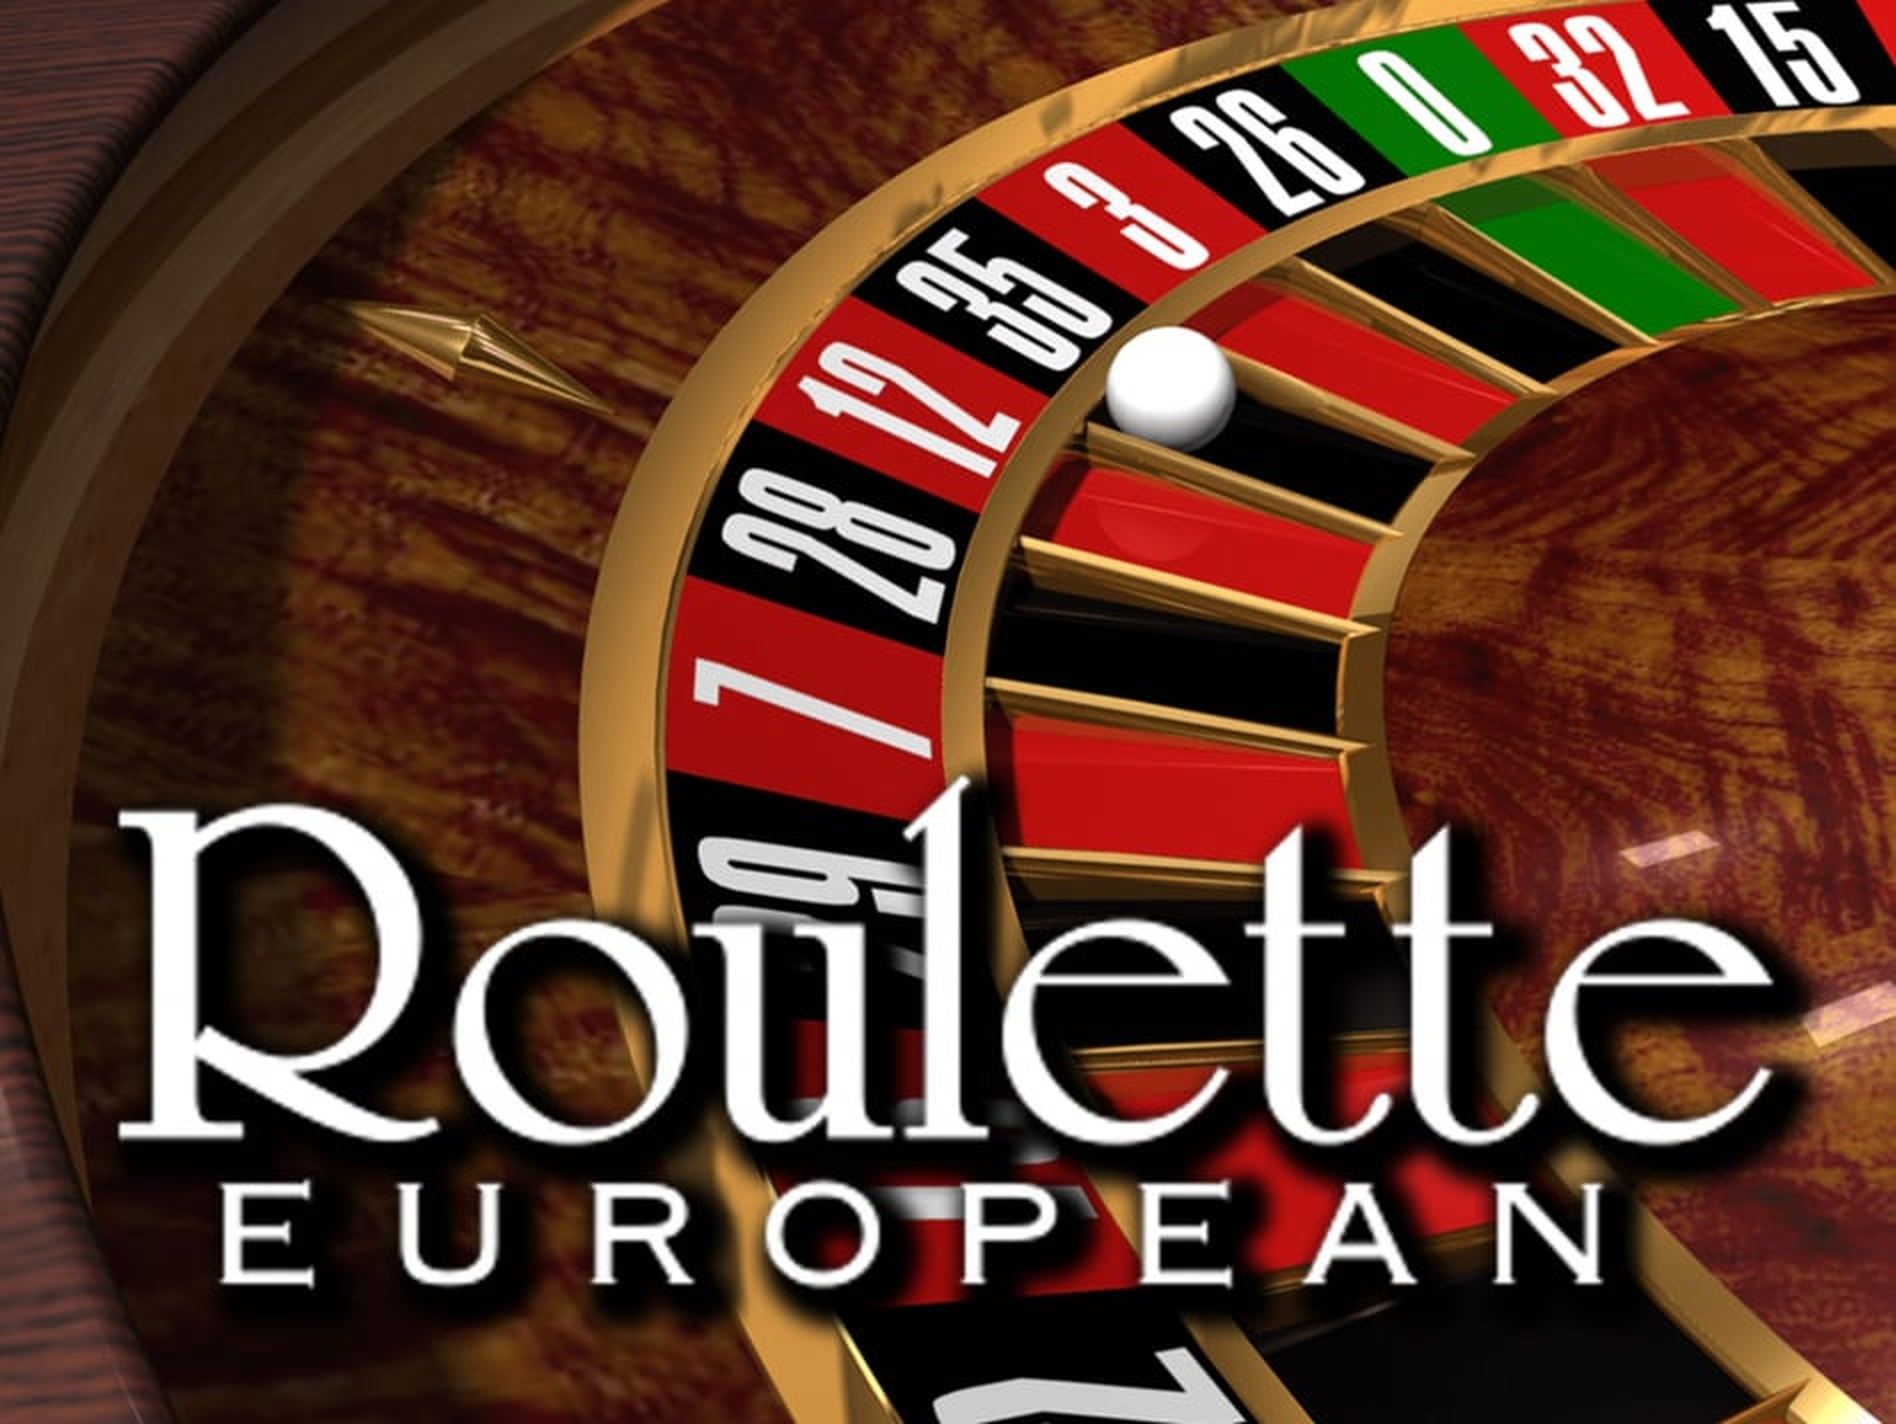 The European Roulette (Realistic) Online Slot Demo Game by Realistic Games